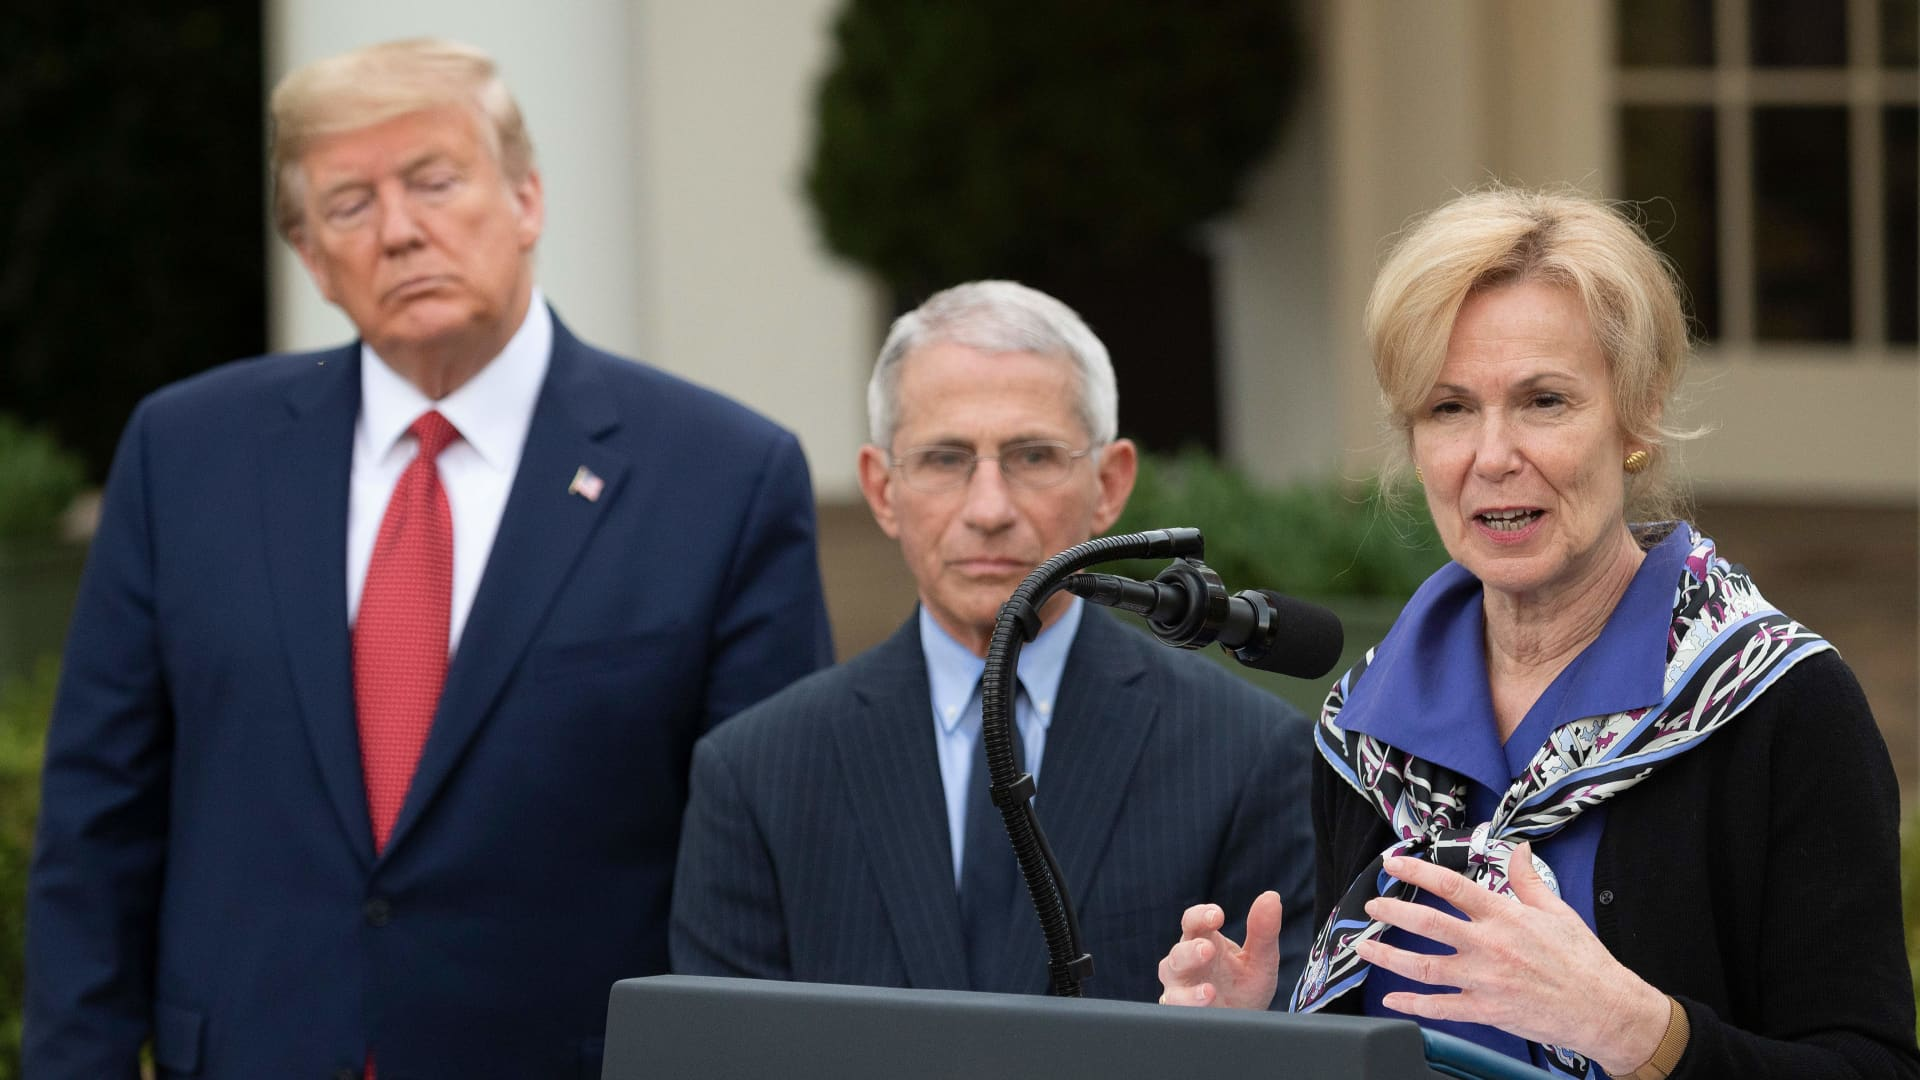 Coronavirus Response Coordinator Dr. Deborah Birx (R) speaks with US President Donald Trump and Director of the National Institute of Allergy and Infectious Diseases Dr. Anthony Fauci during a Coronavirus Task Force press briefing in the Rose Garden of the White House in Washington, DC, on March 29, 2020.